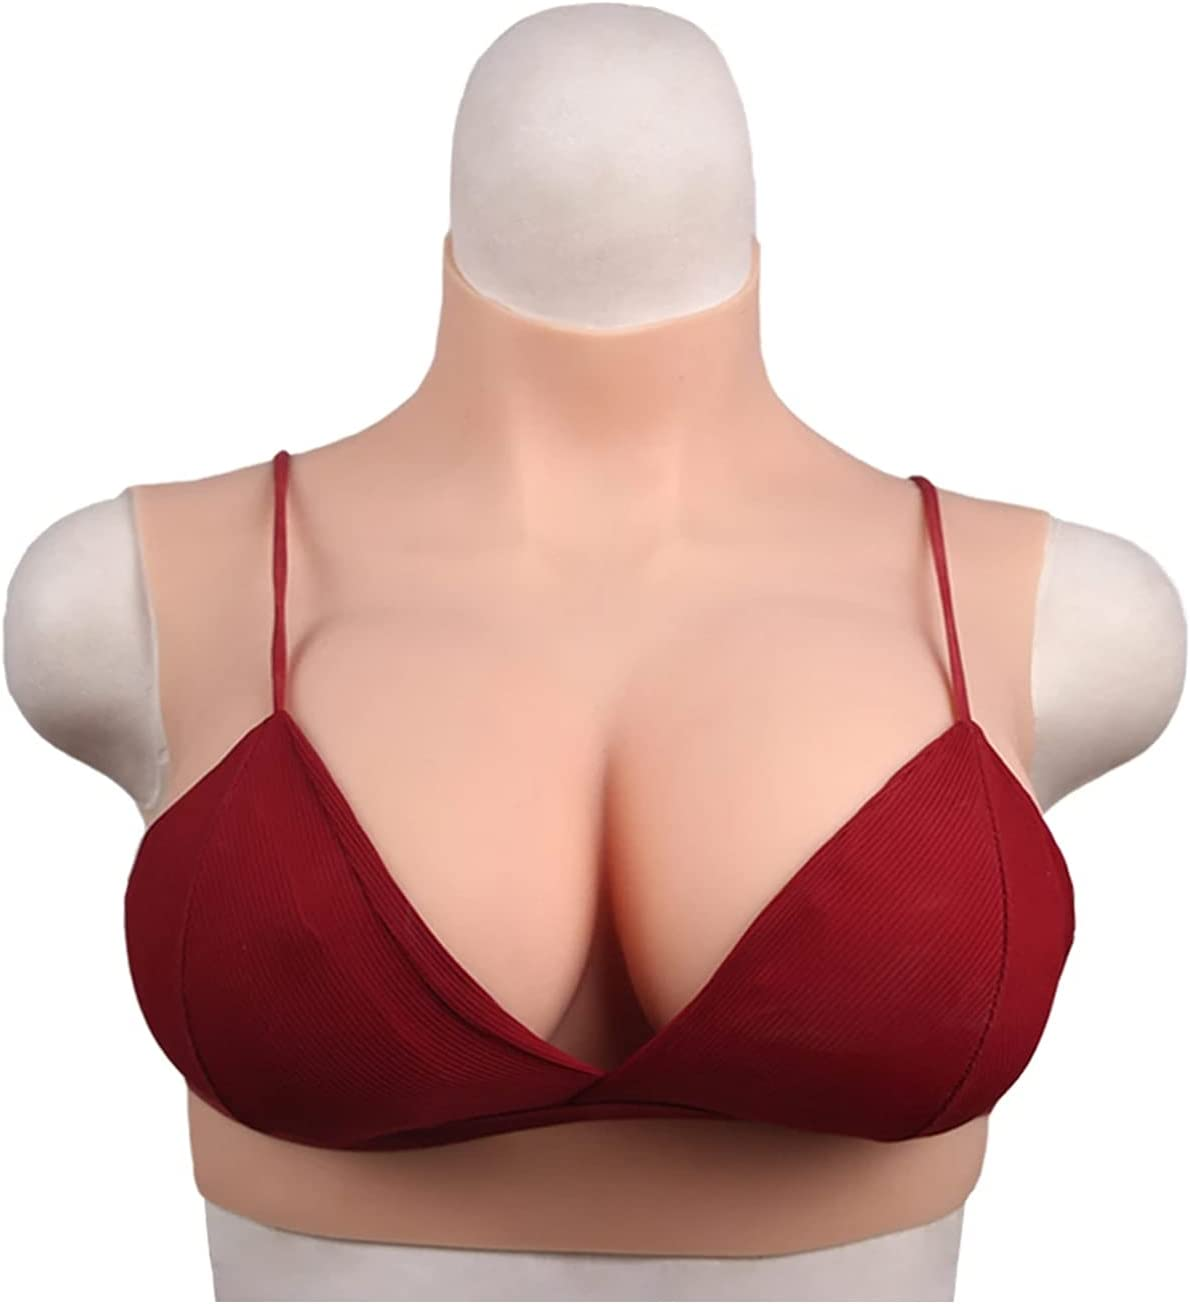 Silicone Breast Forms with Silk Limited price sale Filled Boobs BCDEG Inexpensive Fake for Cup